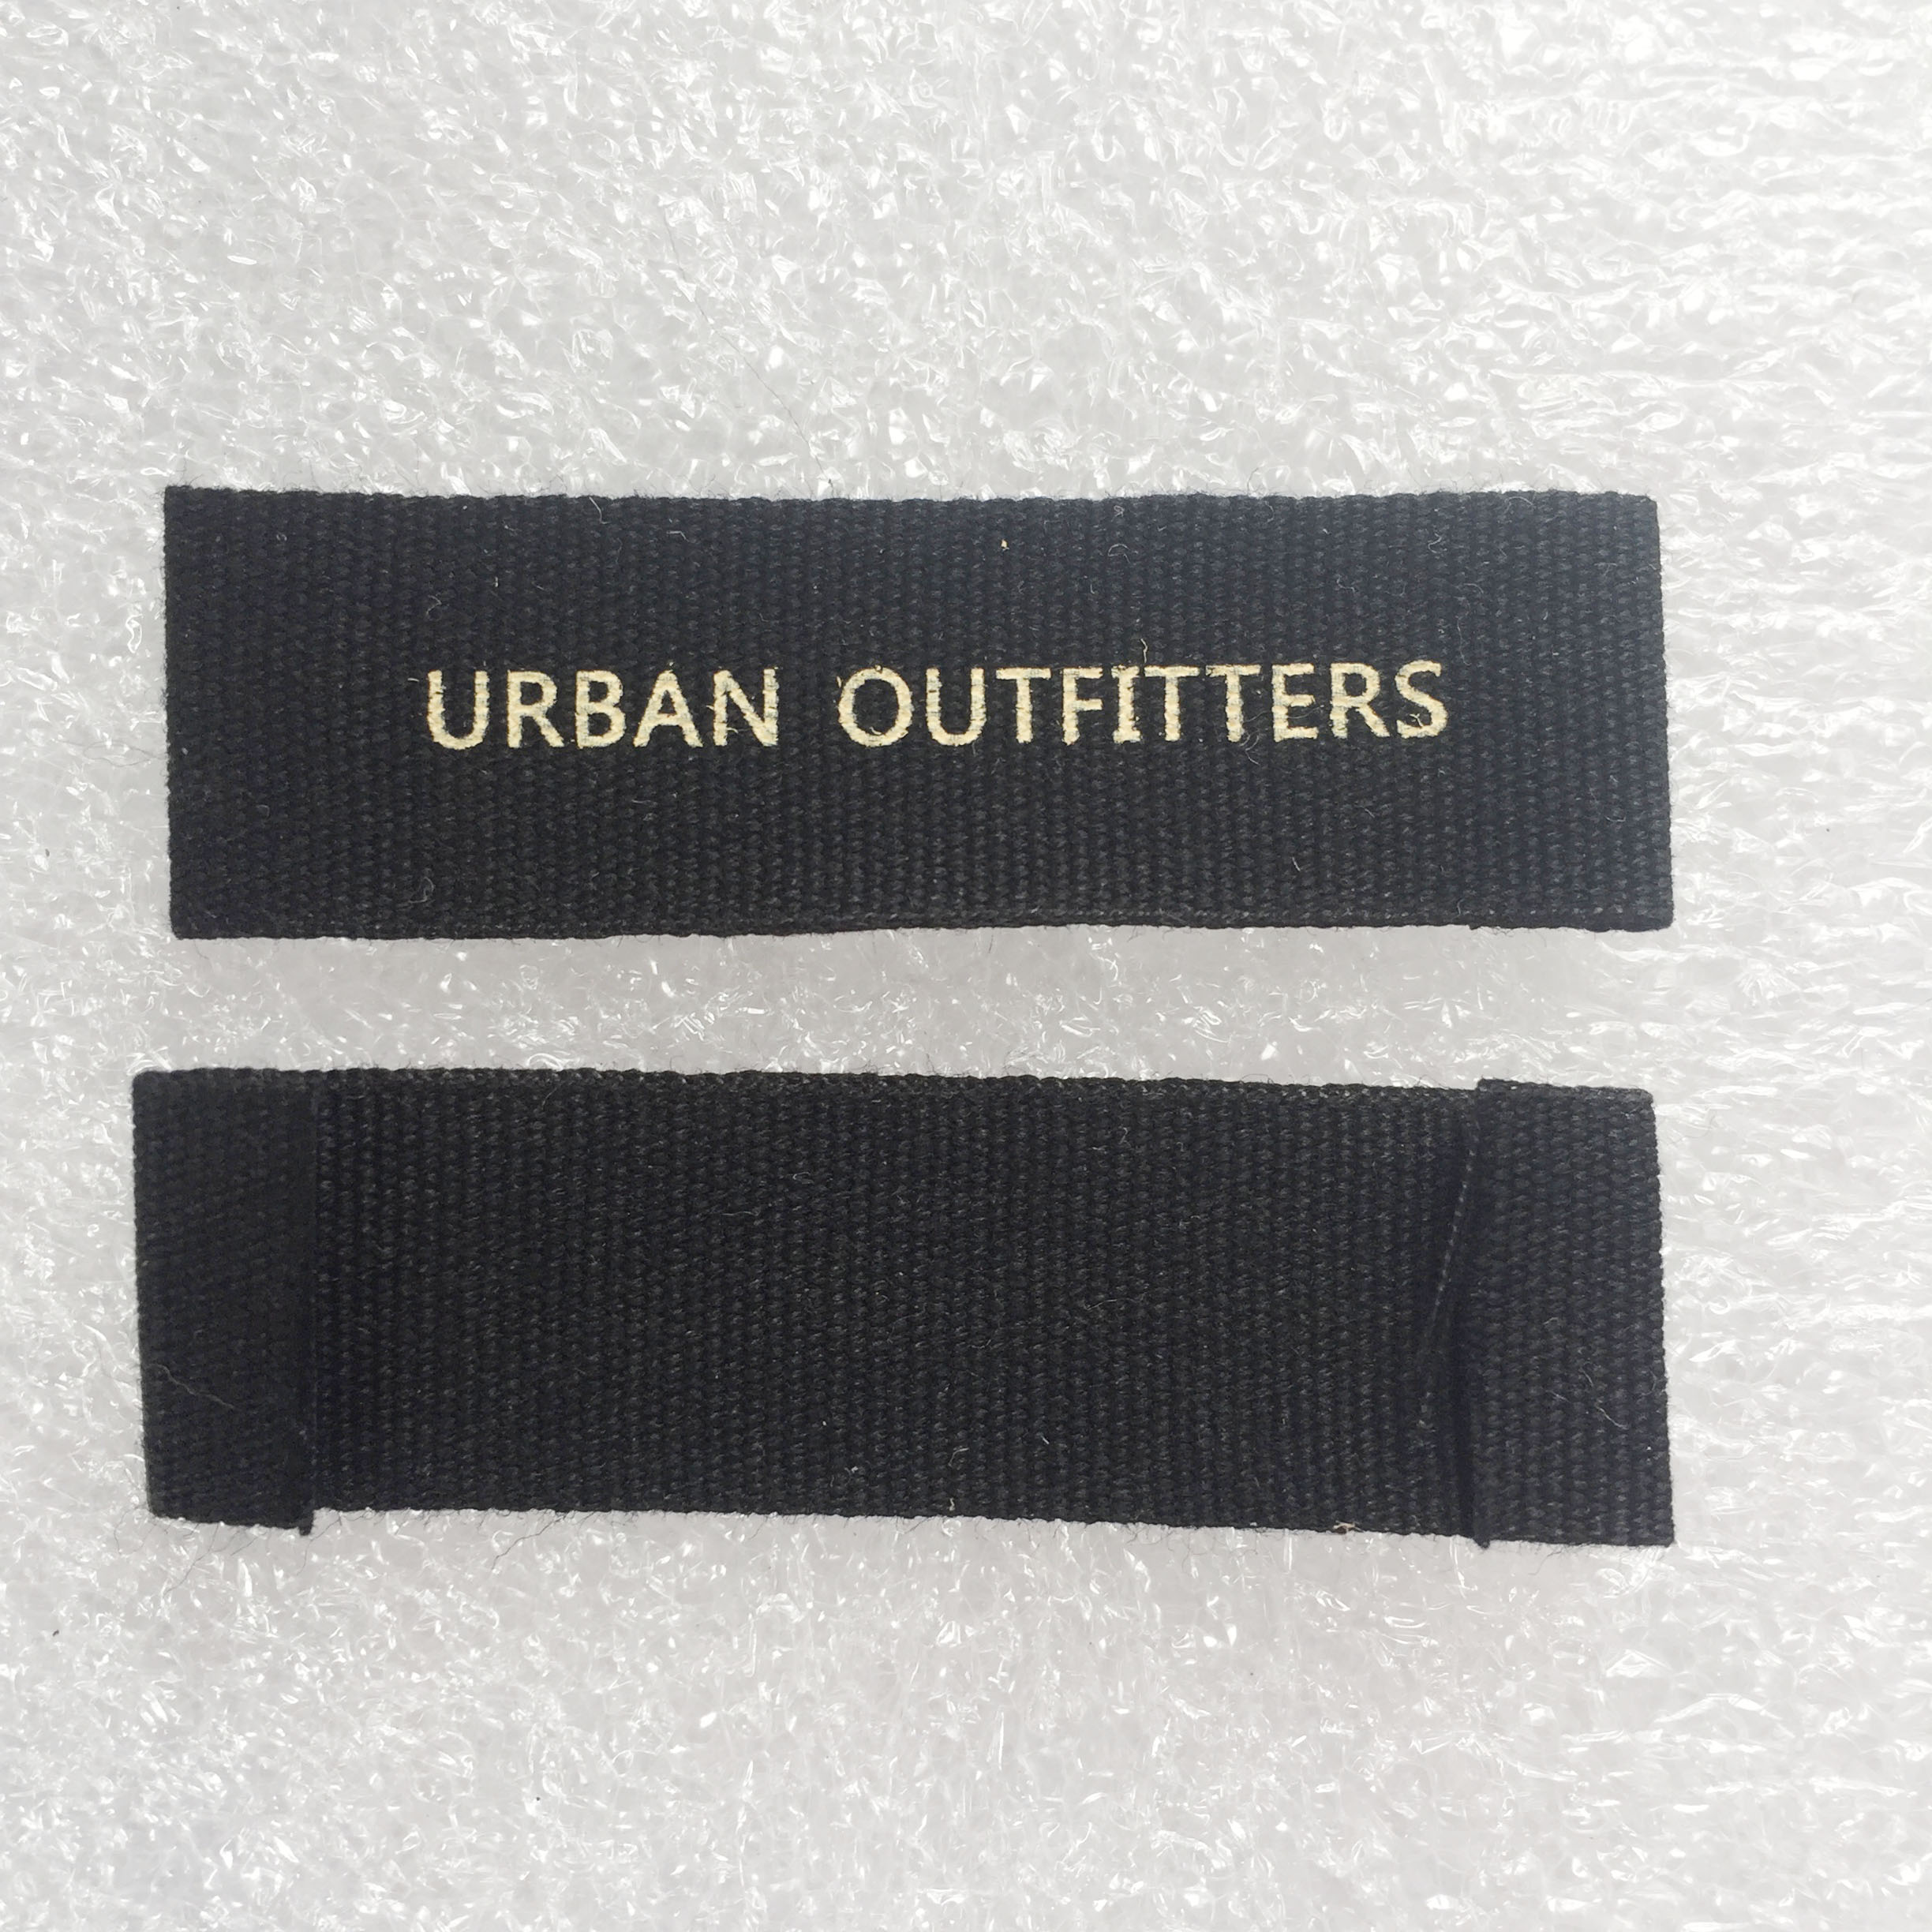 Custom Printed Cotton Label Black Cotton Lable Cotton Label Starch Cotton Label Garment Labels Aliexpress Inside leeuwarden, of course, our cradle! us 55 0 custom printed cotton label black cotton lable cotton label starch cotton label garment labels aliexpress